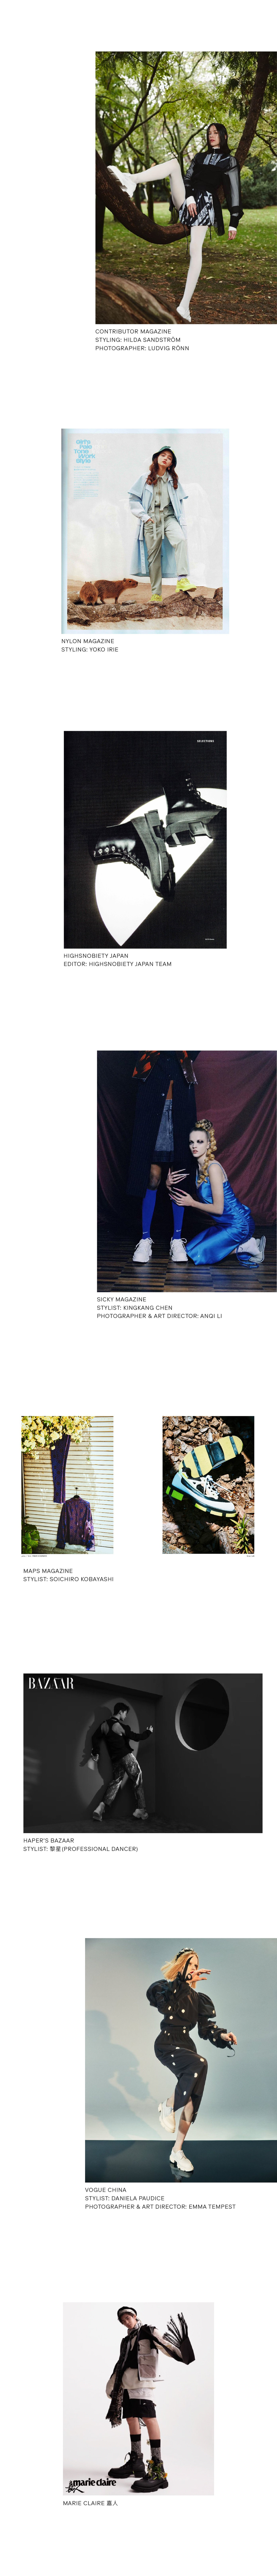 ss20_stories_press_coverage-01